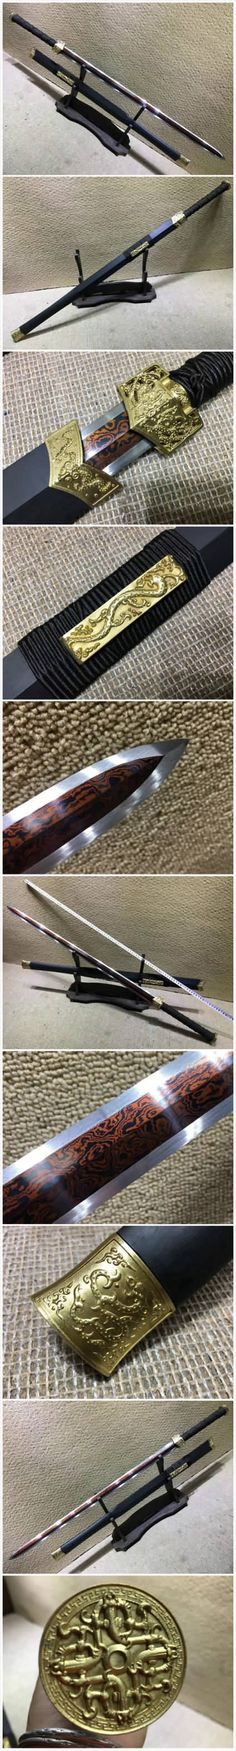 "Item Specification: Material:Damascus steel/Folded steel,Red-surface treatment; Sword Type:Hand Made Sword; Package weight:2KG; Overall Length:41""/105cm; Blade Length:29""/75CM; Scabbard:Black wood; Handle:Solid wood, wrapped a rope slip; Knife fitted:Brass fittings; Condition:Brand New; Origin:Longquan Zhejiang China; Accessories:Cotton sword bag. No wood stand."